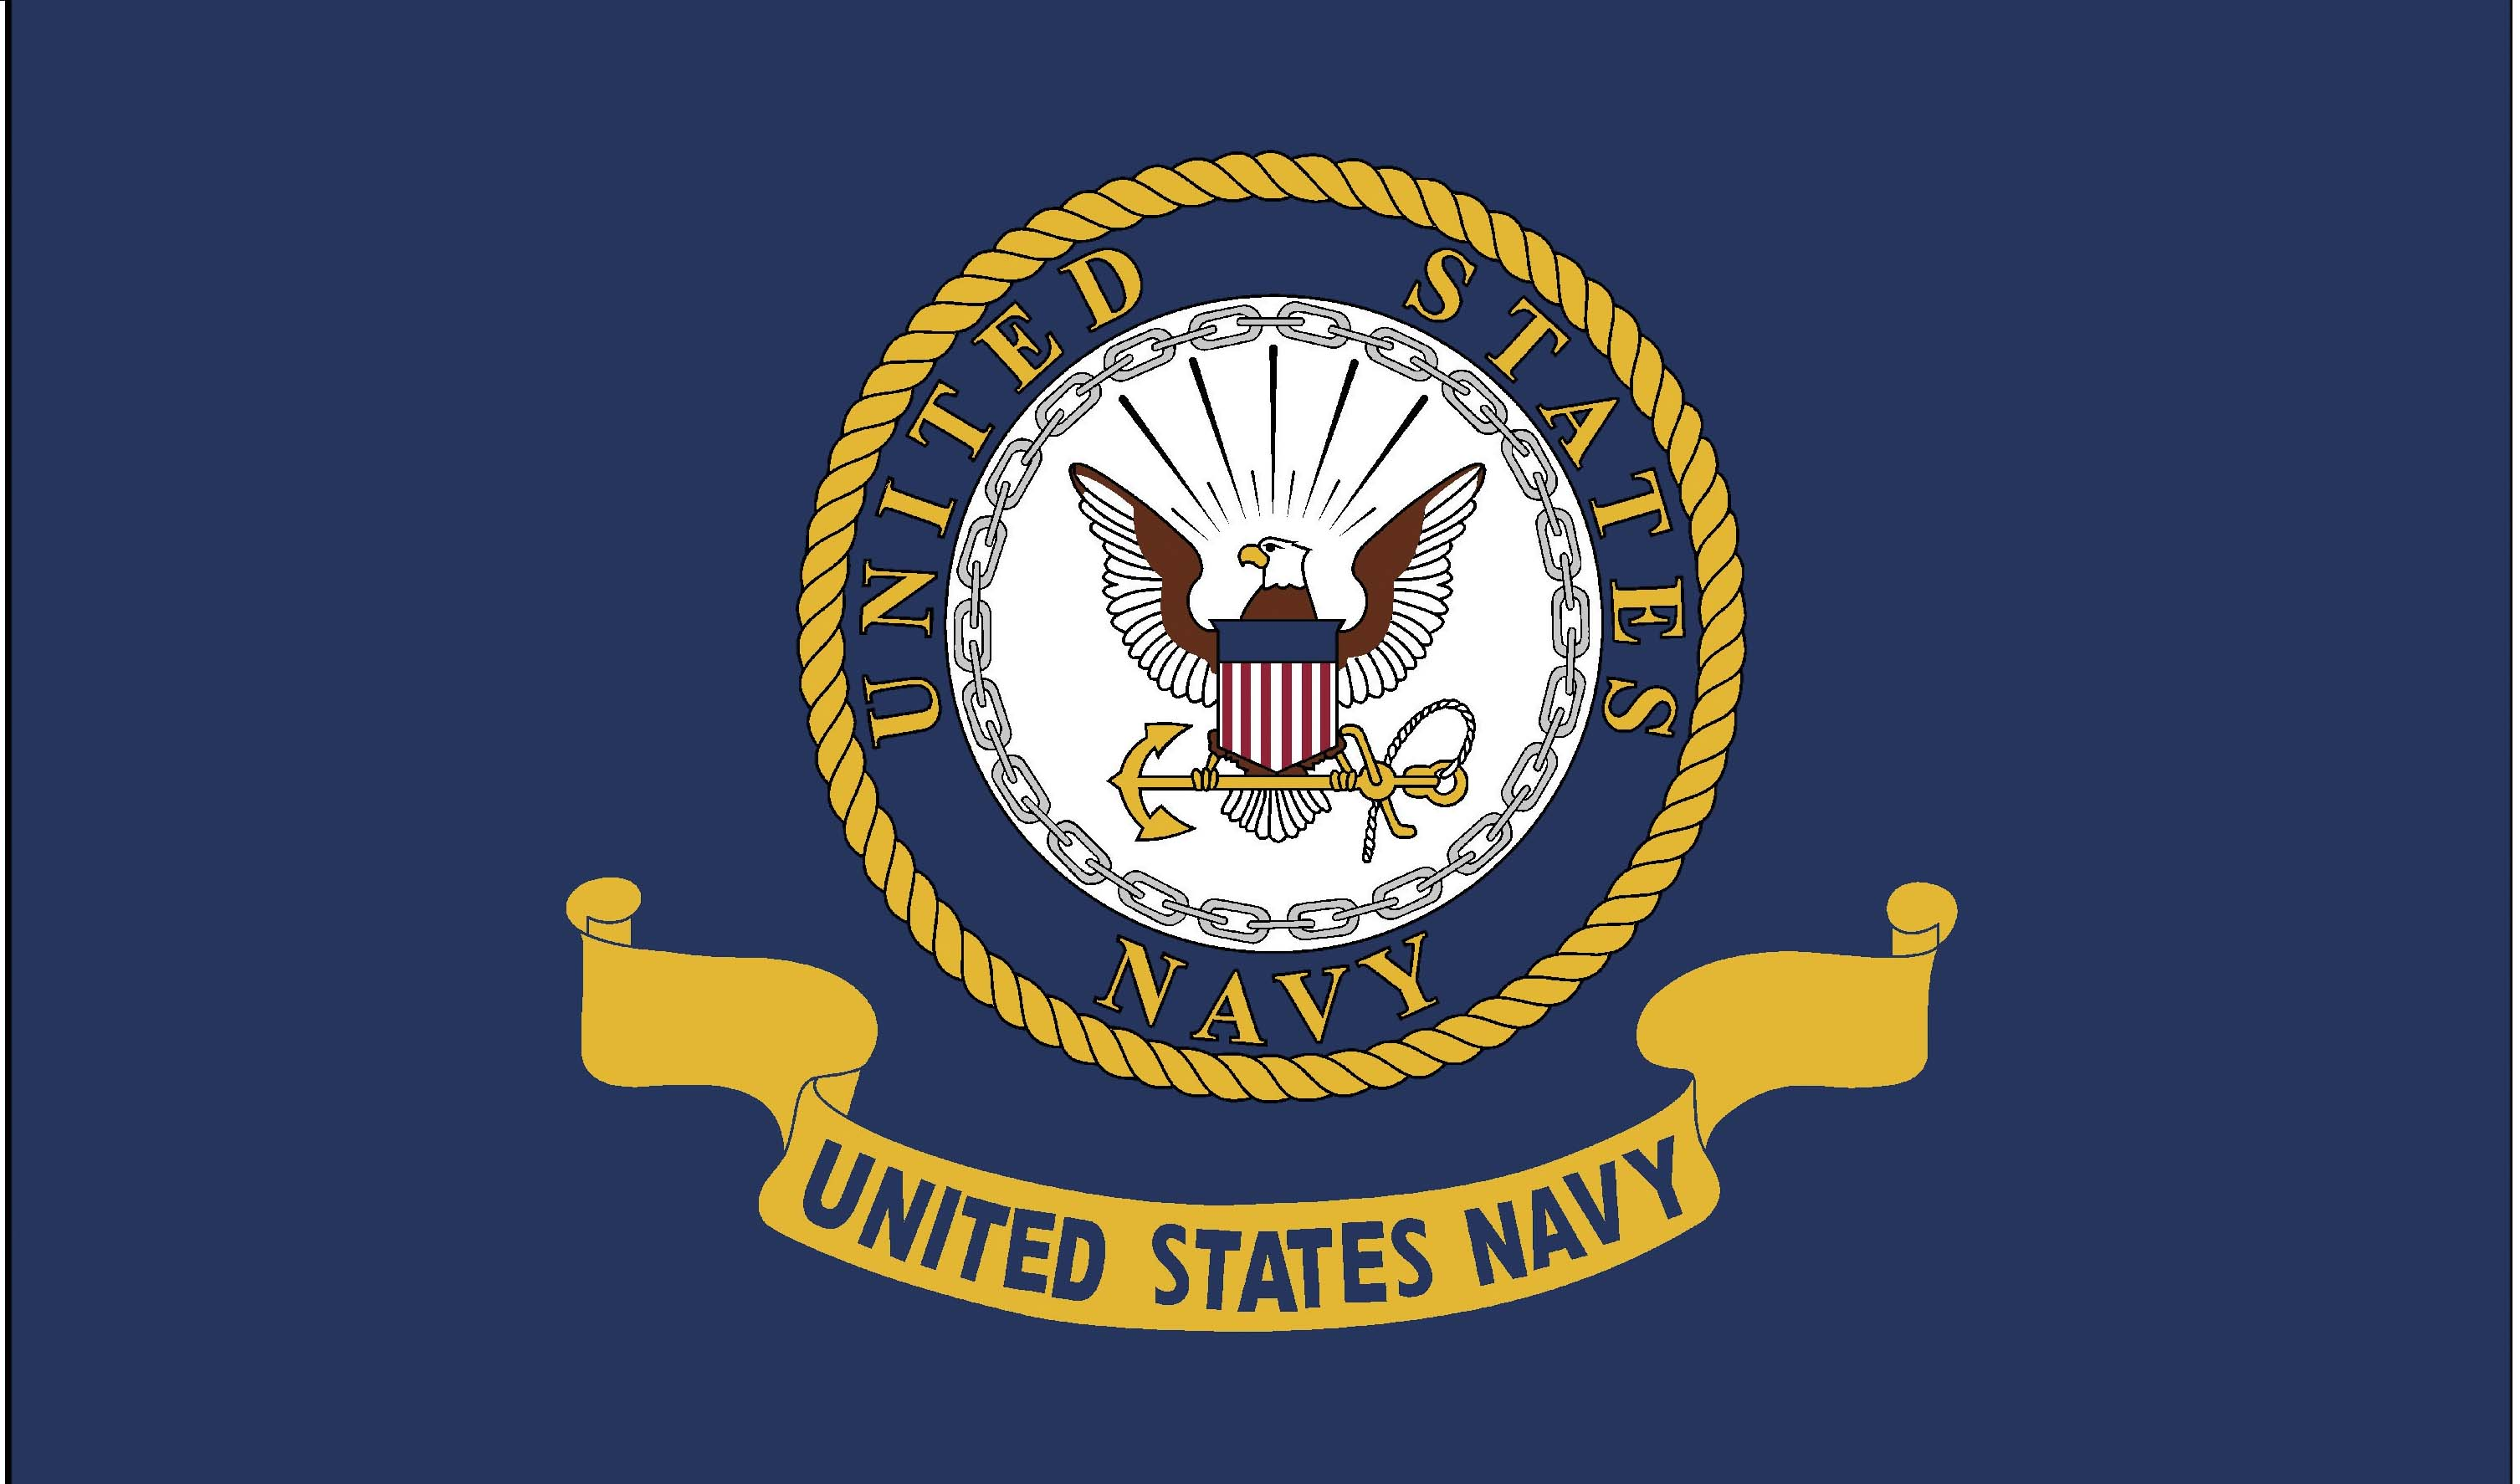 US Navy - New Version